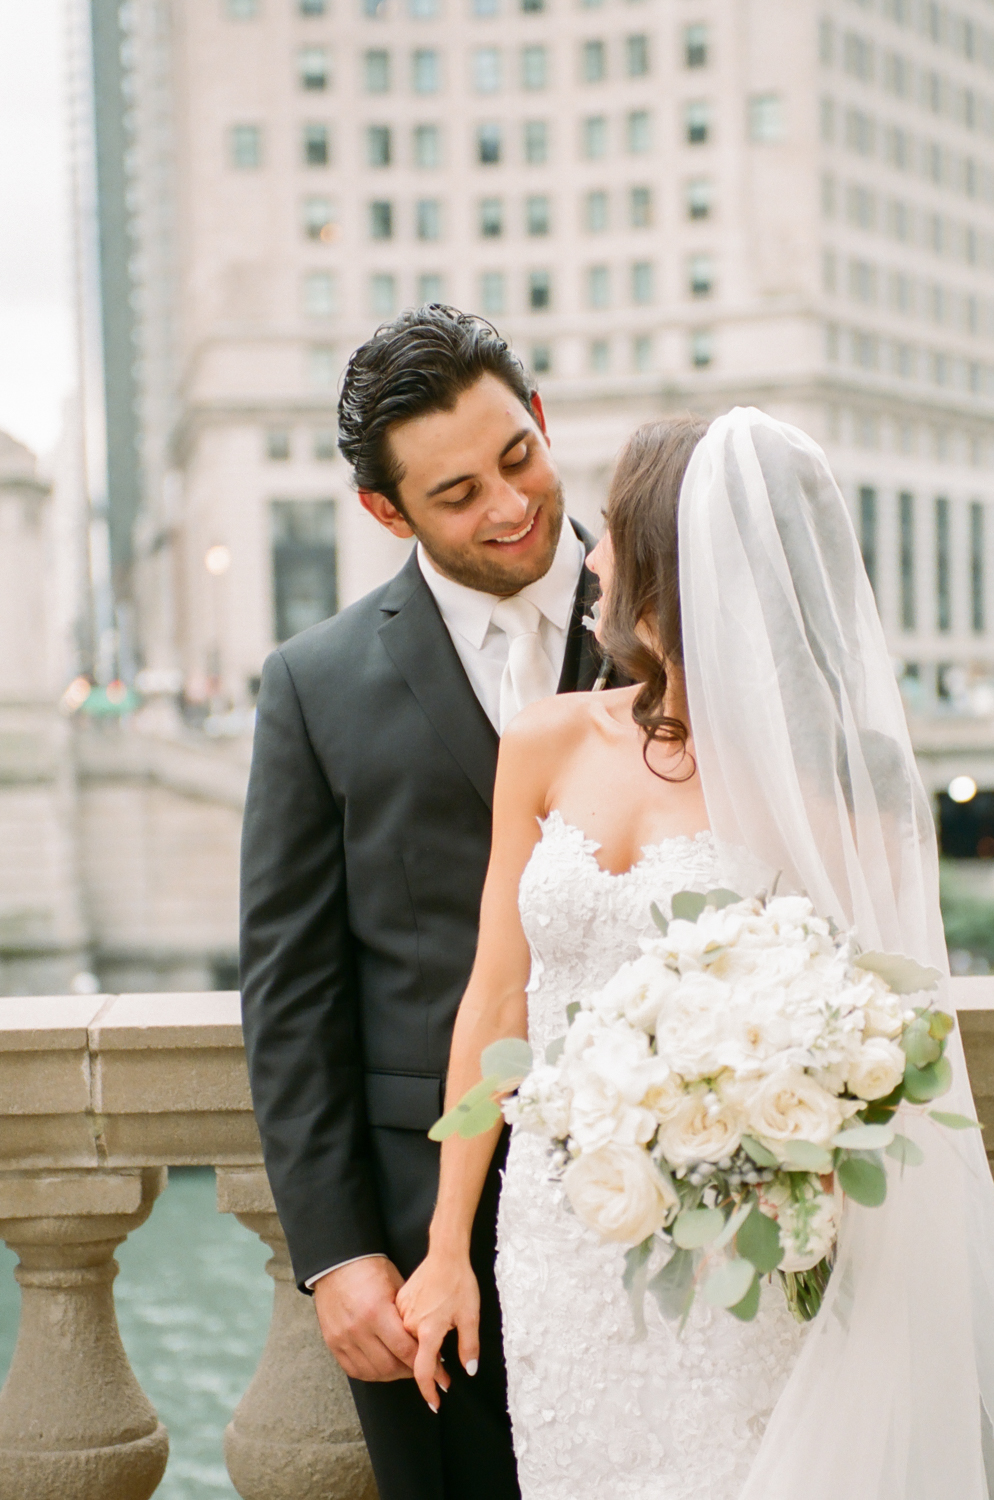 Bride and groom by Chicago canal on Michigan Avenue, Destination fine art wedding photographer